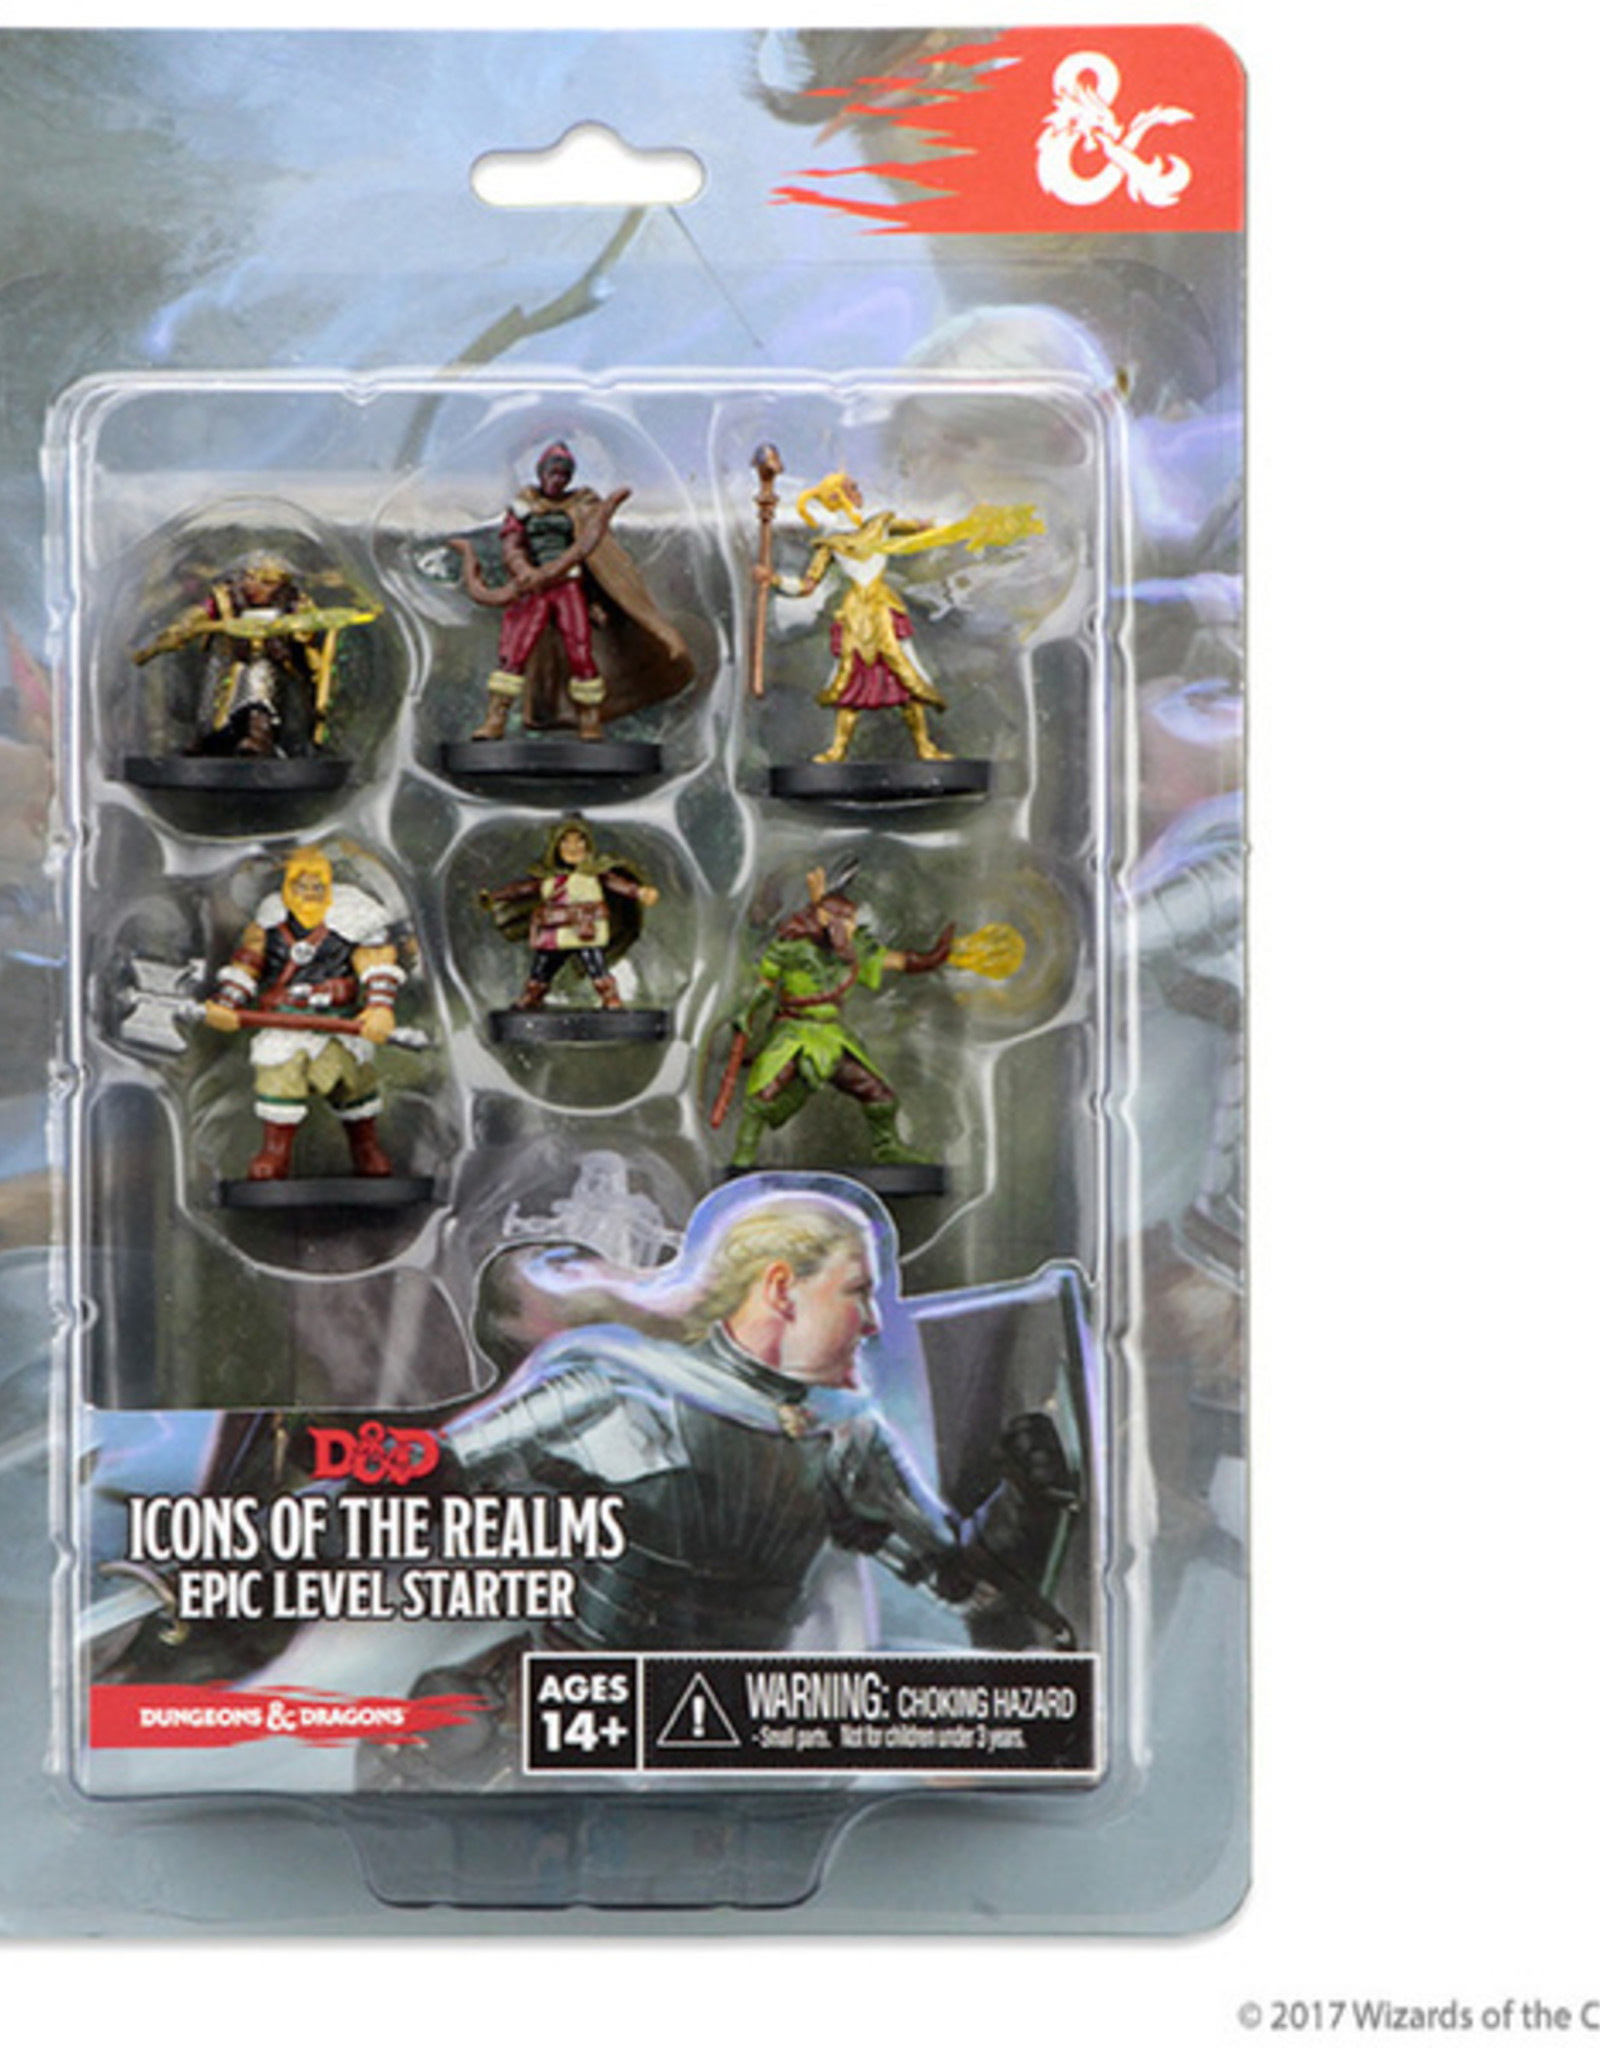 Wizkids D&D Icons of the Realms Epic Level Starter